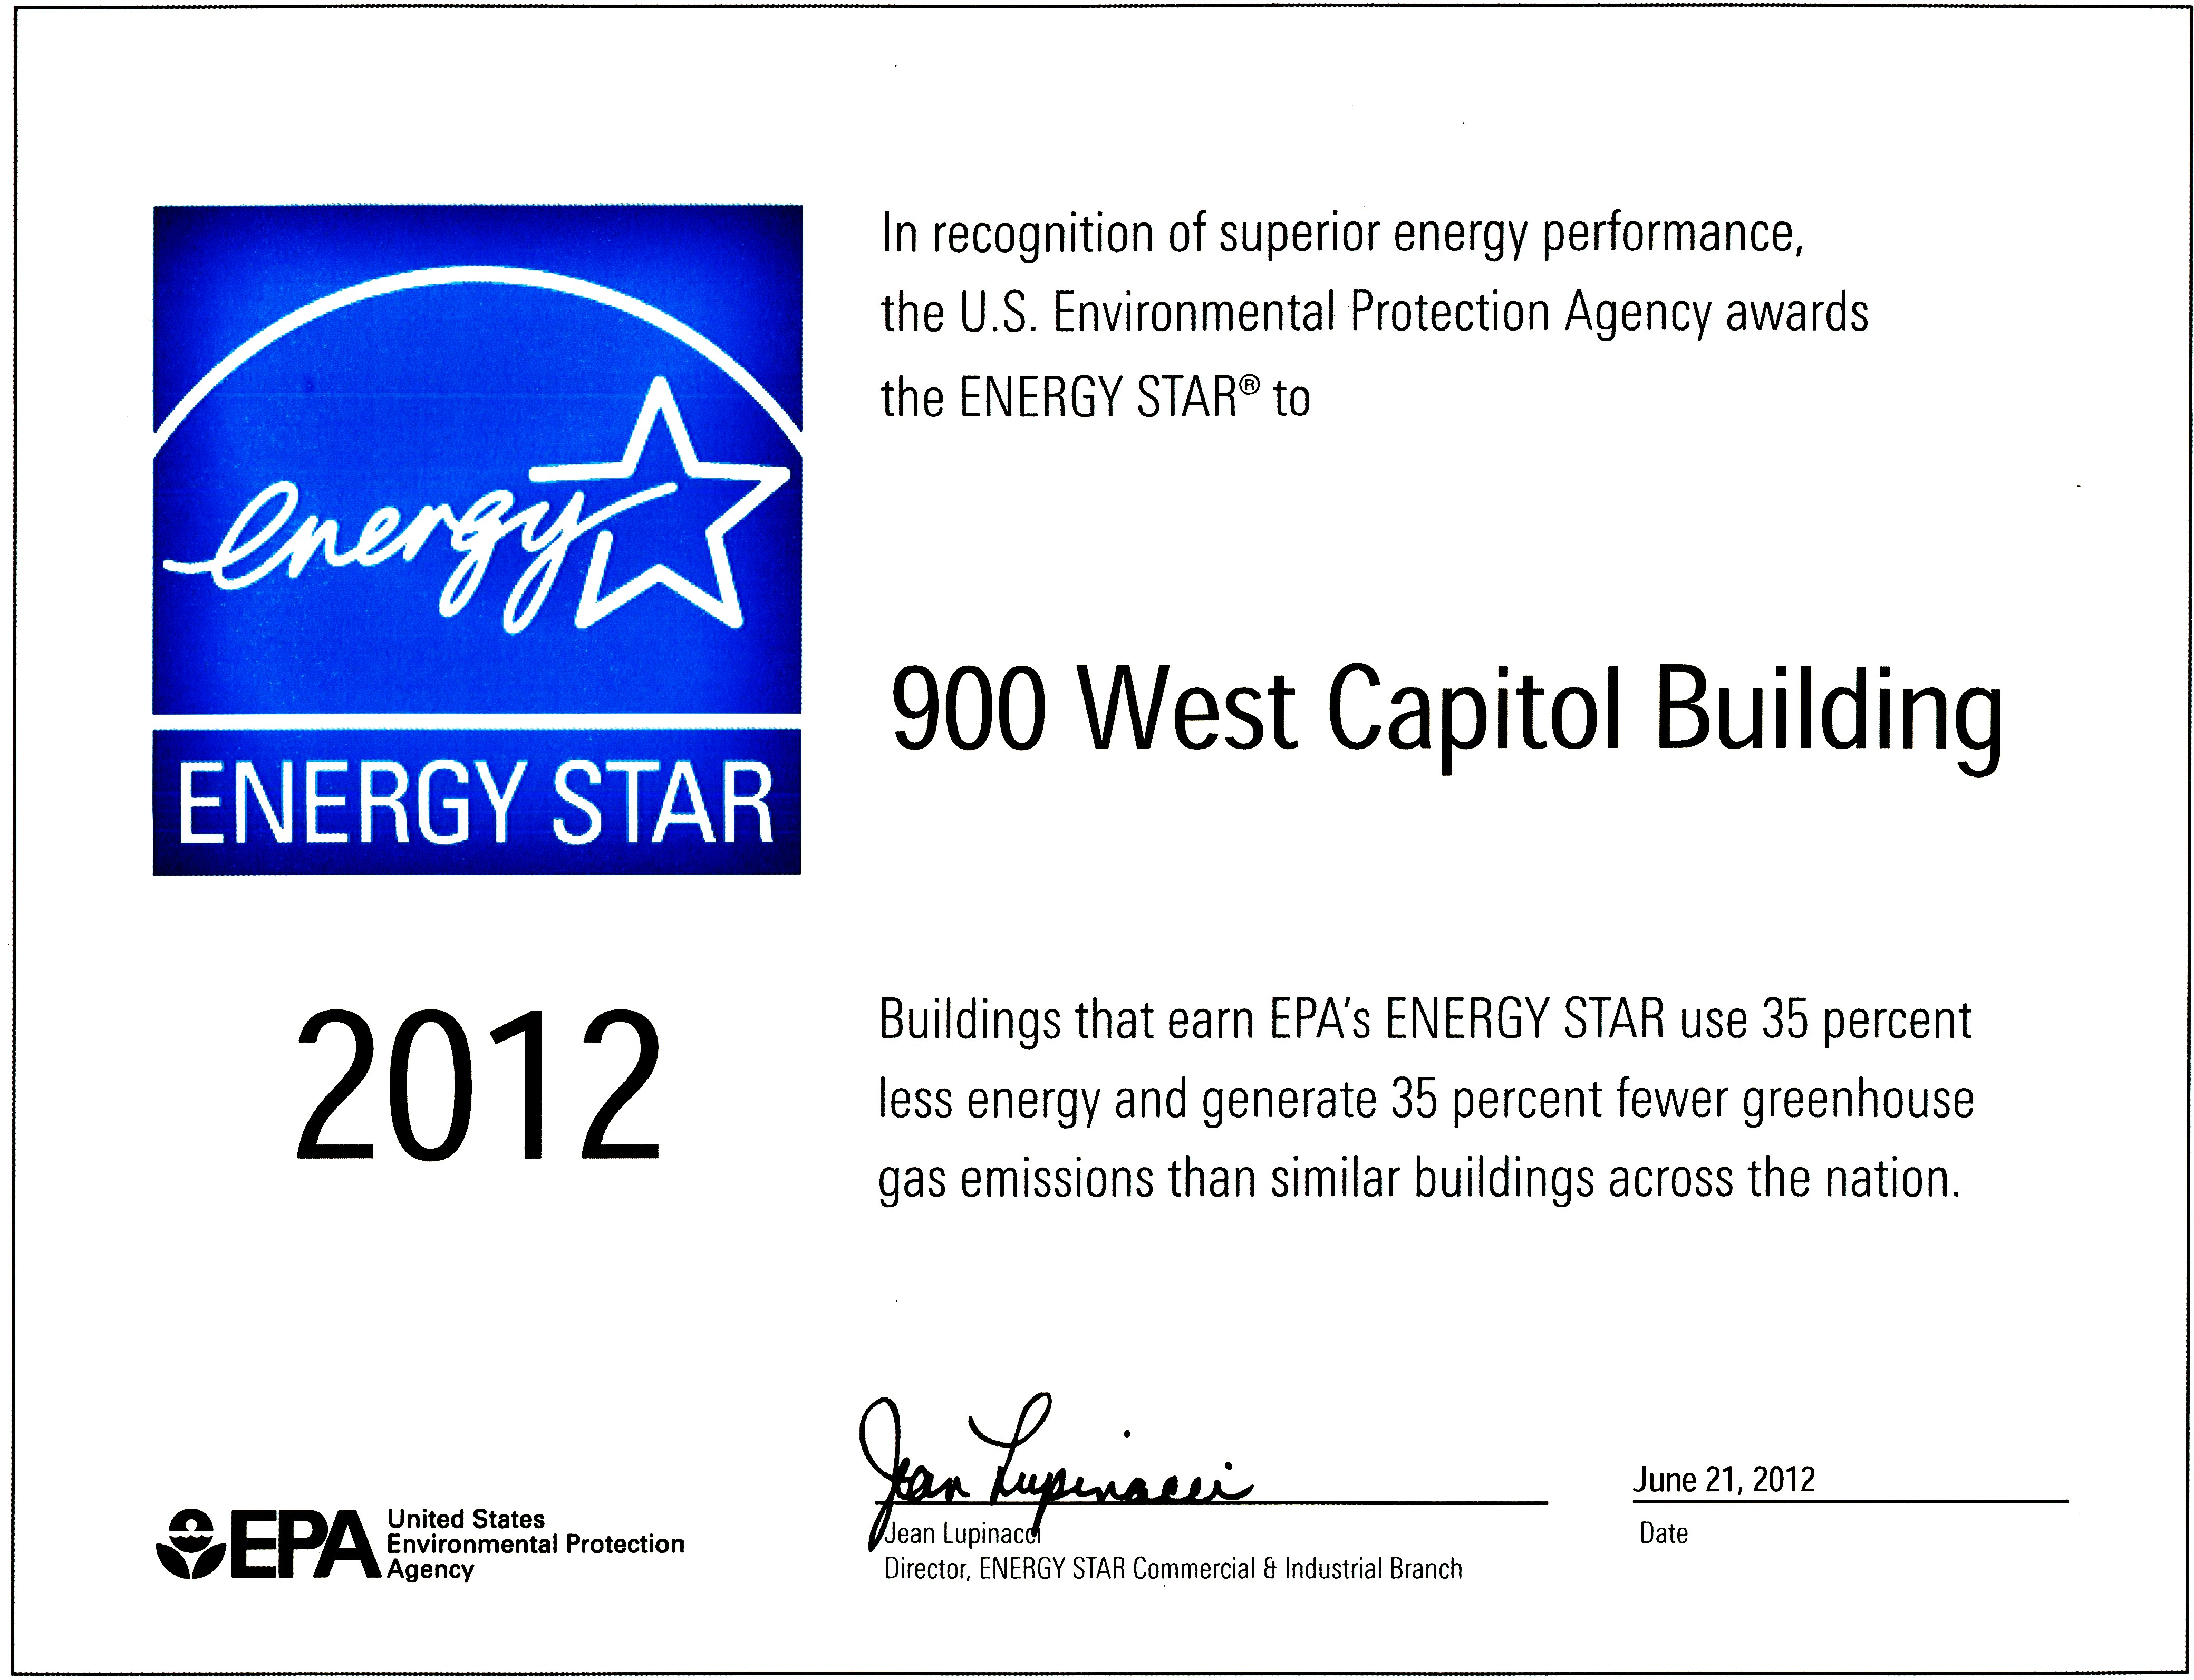 900 West Capitol Building earned the EPA Energy Star  for use 35 percent less energy and generated 35 percent fewer greenhouse gas emissions than similar buildings across the nation.